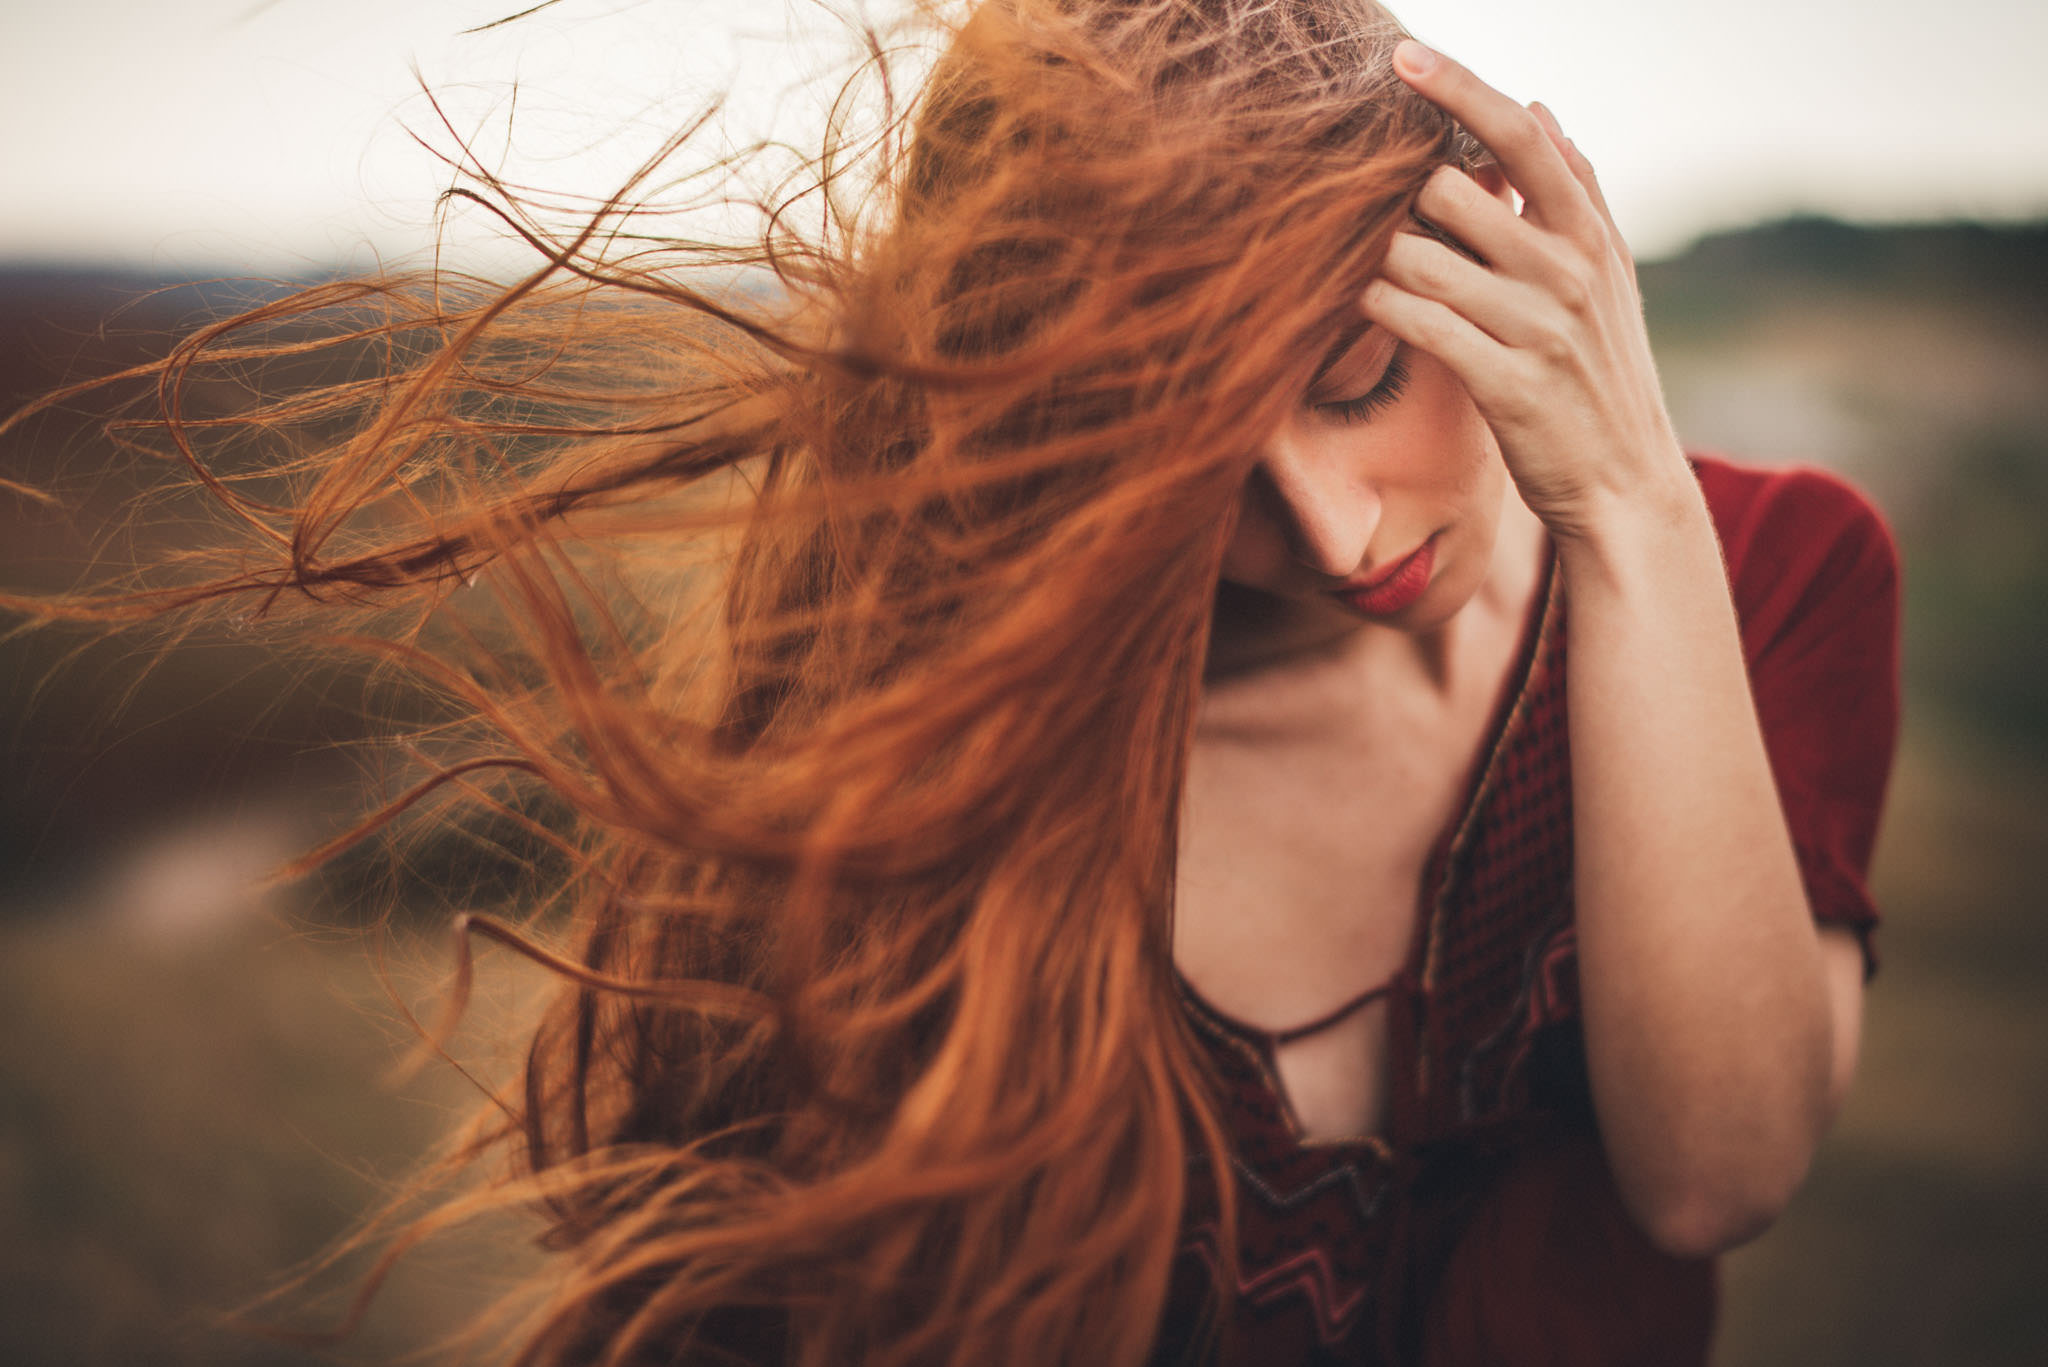 emotional portrait photography feeling wind freedom